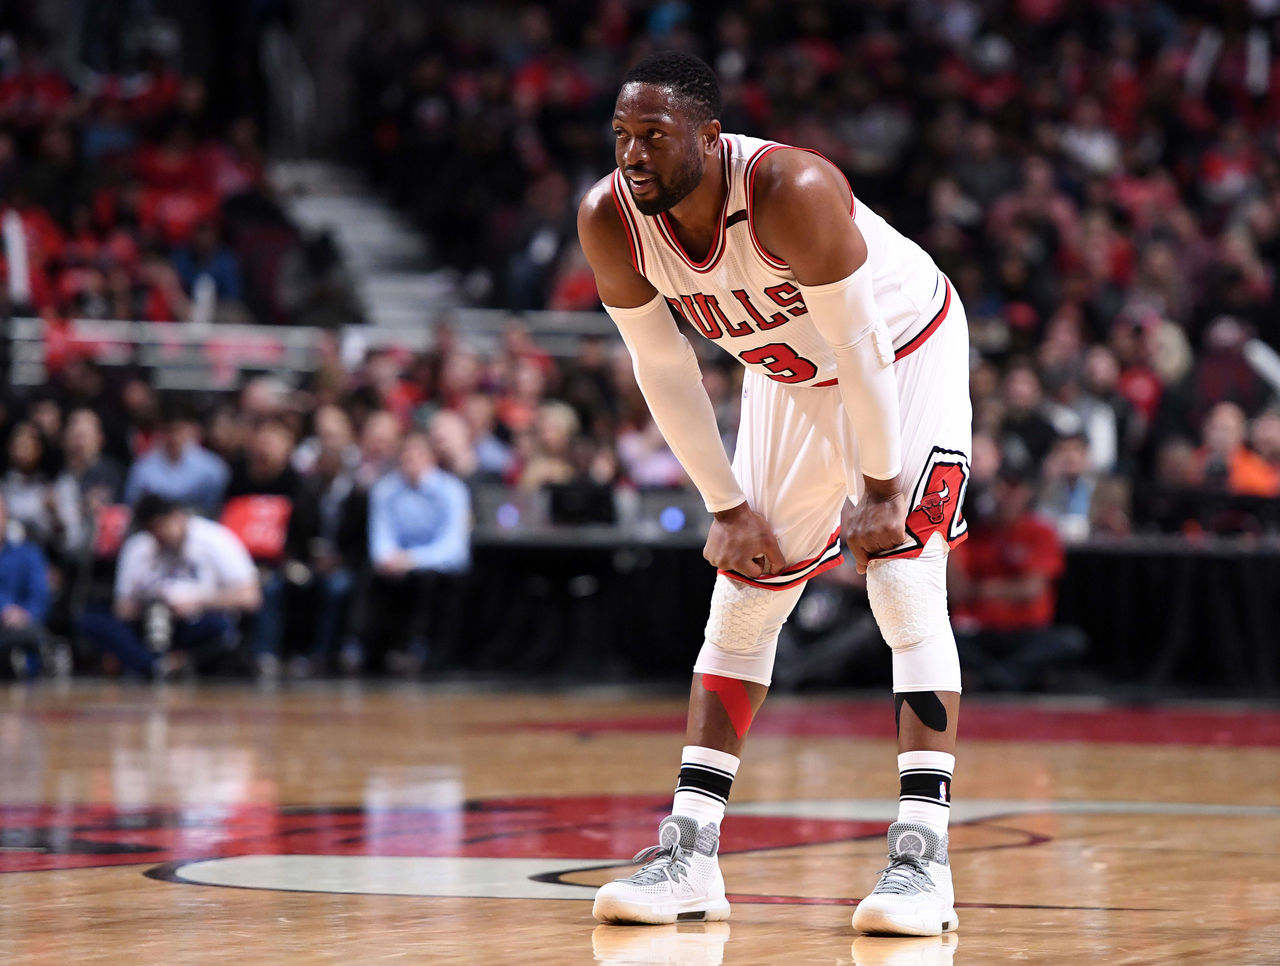 Cropped 2017 04 13t024541z 2035549254 nocid rtrmadp 3 nba brooklyn nets at chicago bulls